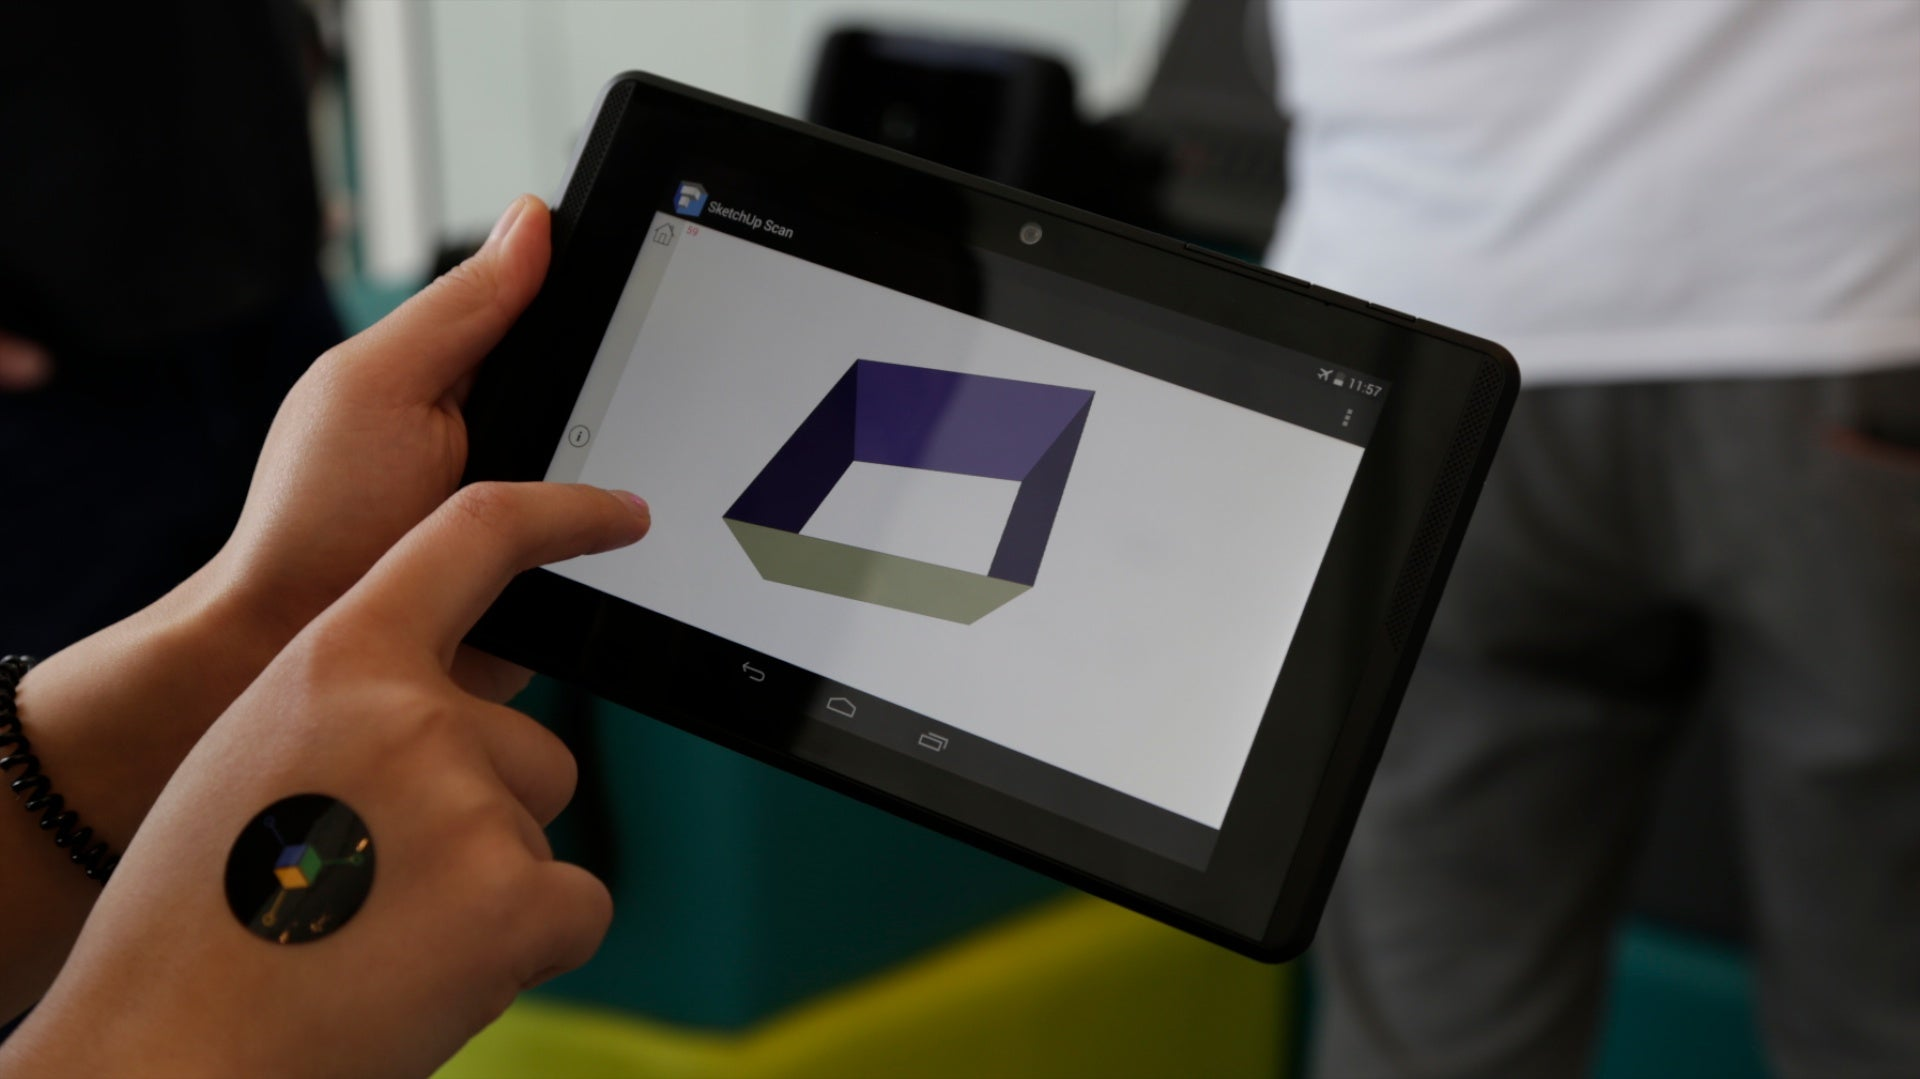 Project Tango Hands-On: Computer Vision Is So Much Cooler Than You Think